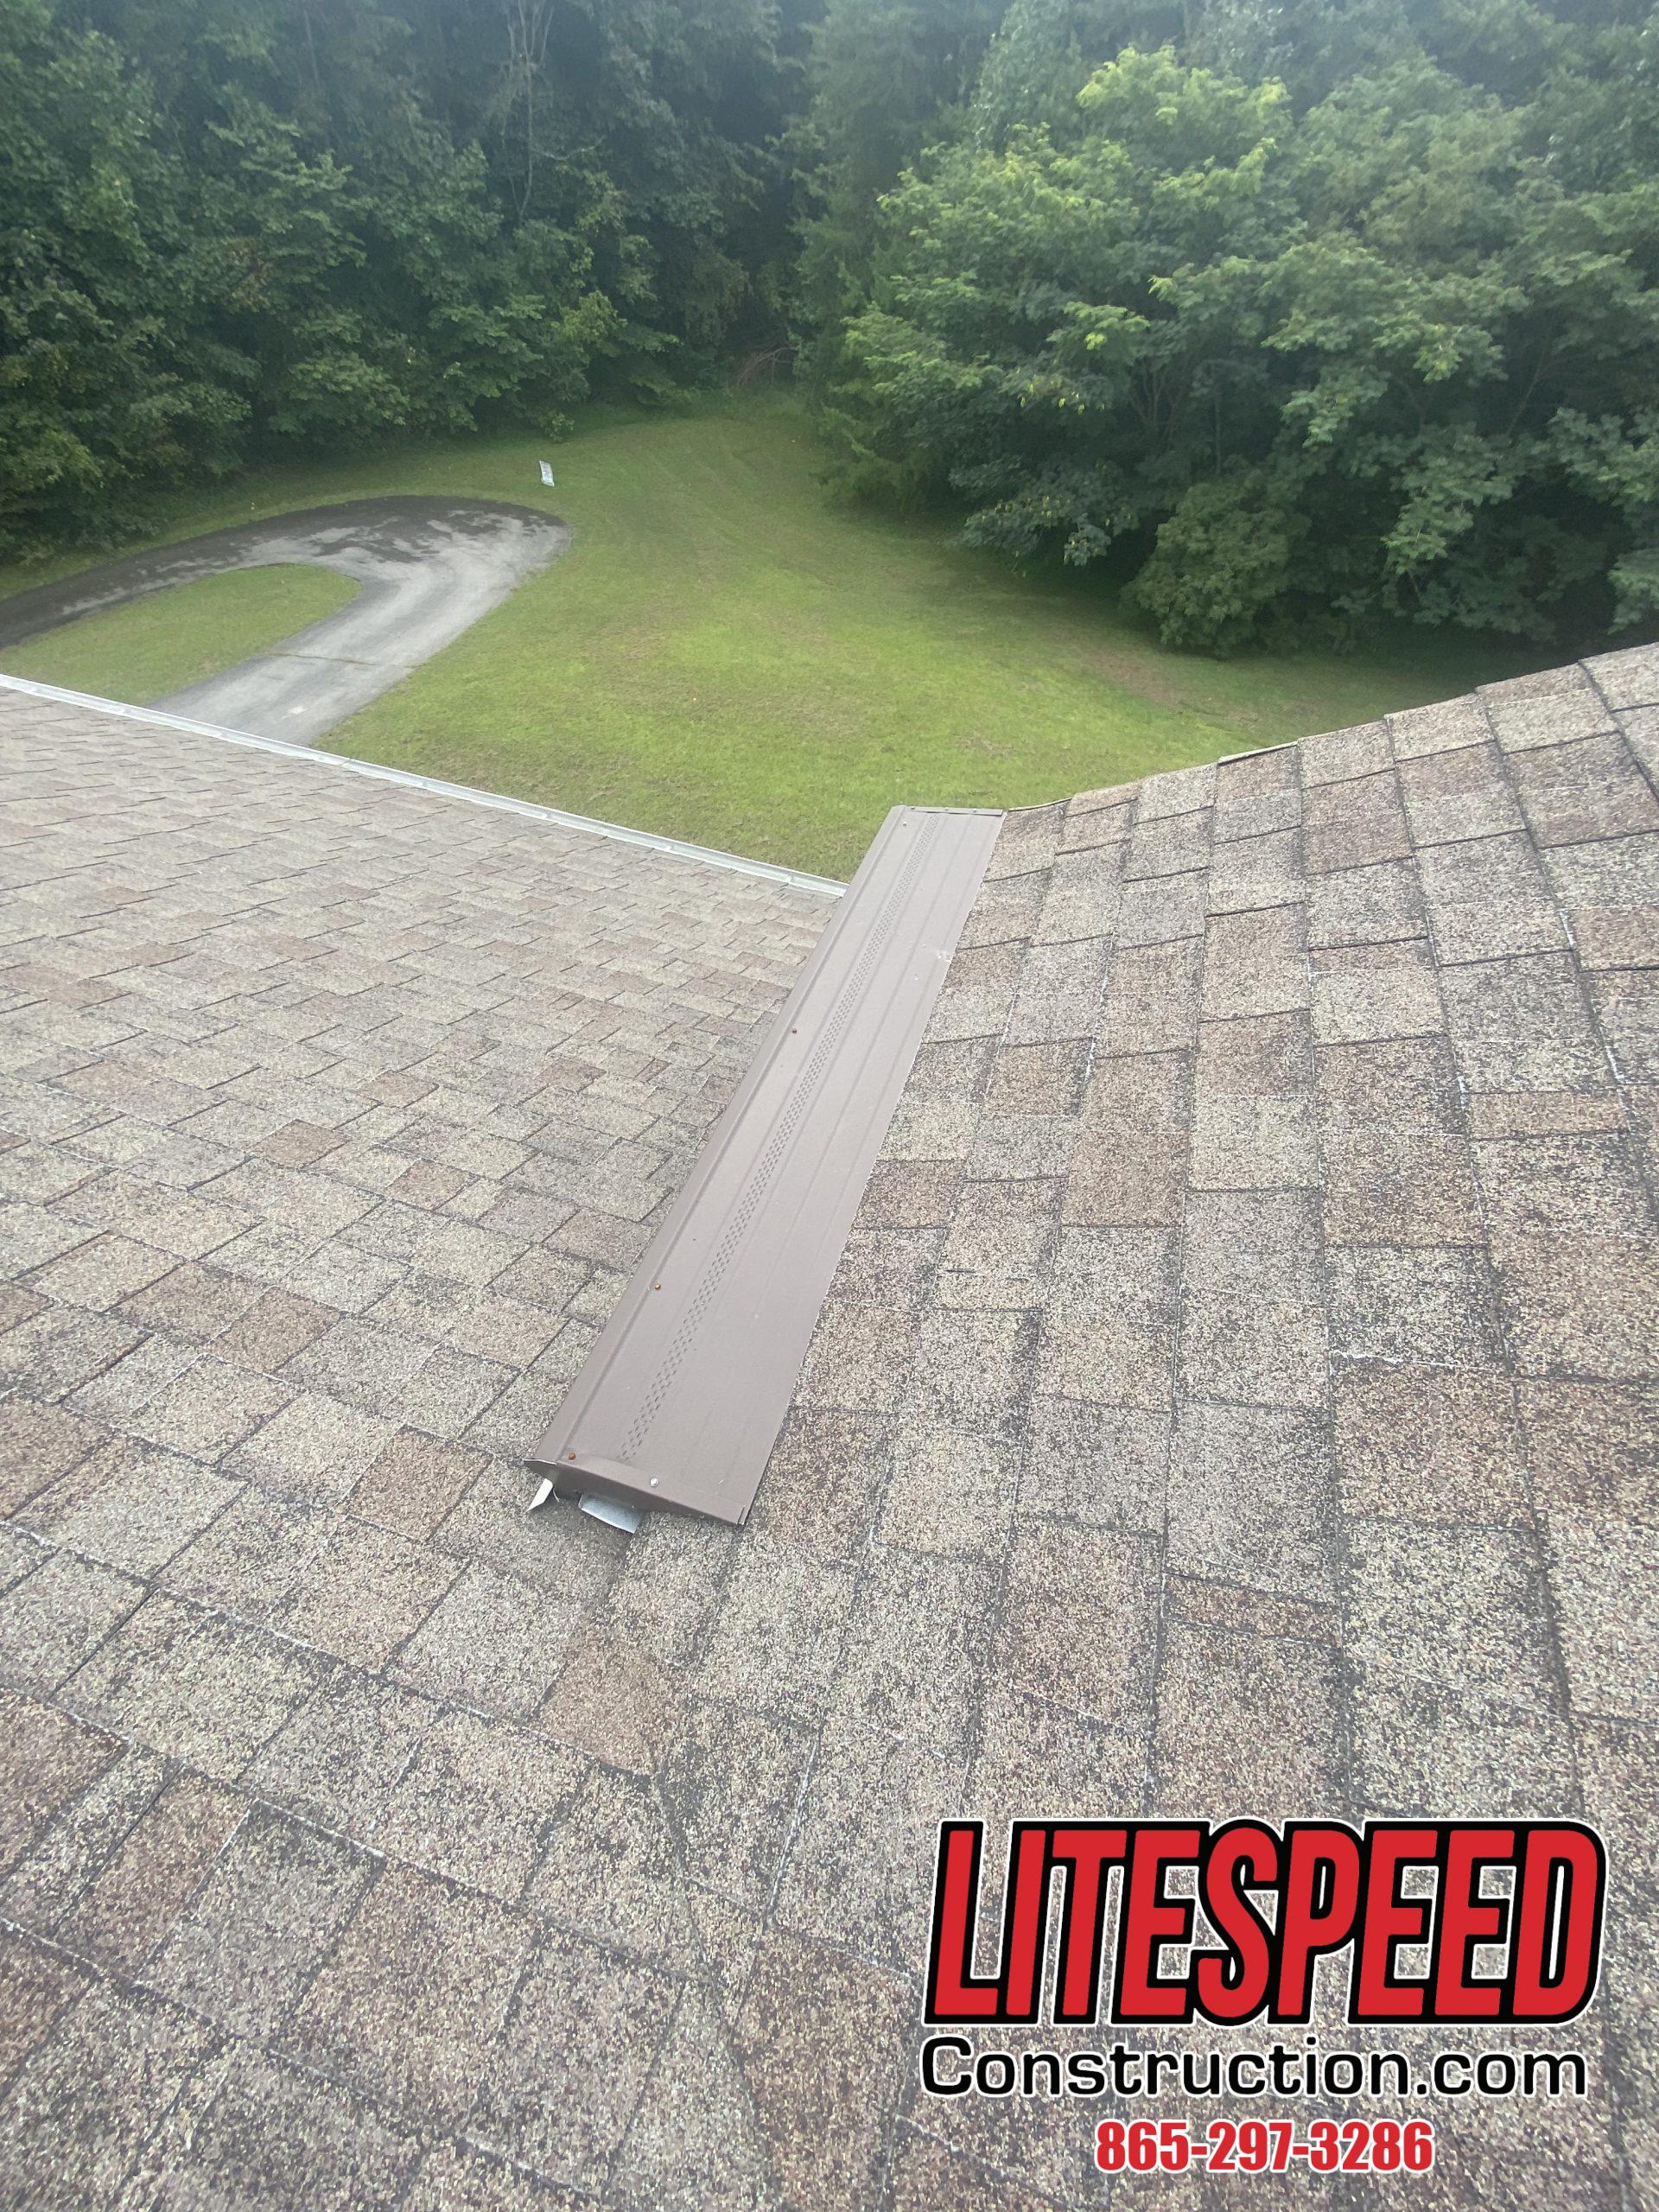 This is a picture of gutters with brown metal gutter guards